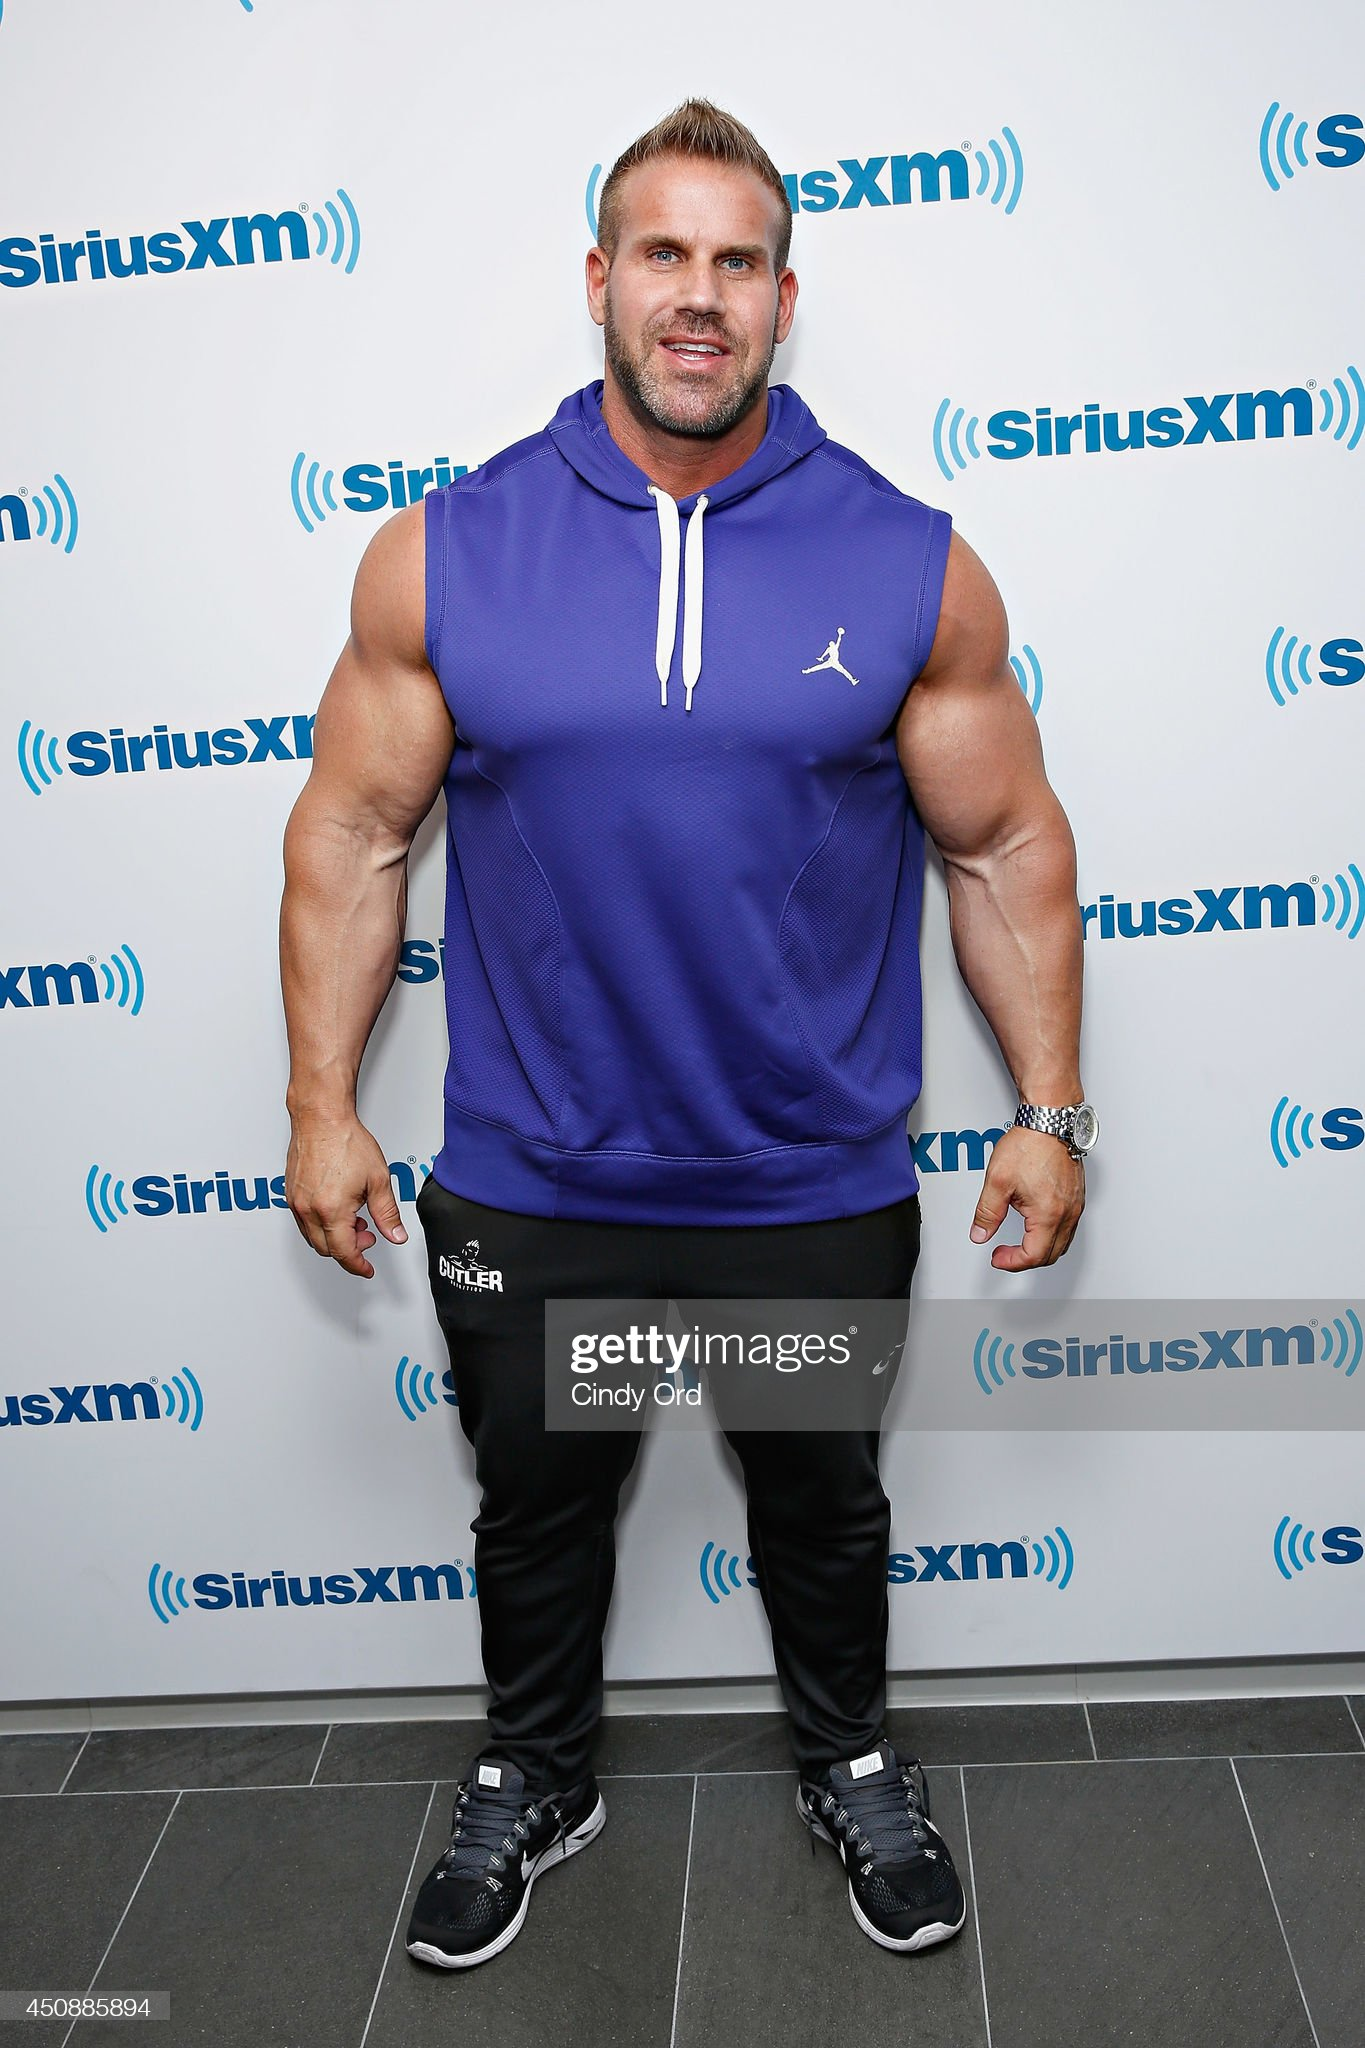 ¿Cuánto mide Jay Cutler? - Altura - Real height Mr-olympia-winner-ifbb-professional-bodybuilder-jay-cutler-visits-the-picture-id450885894?s=2048x2048